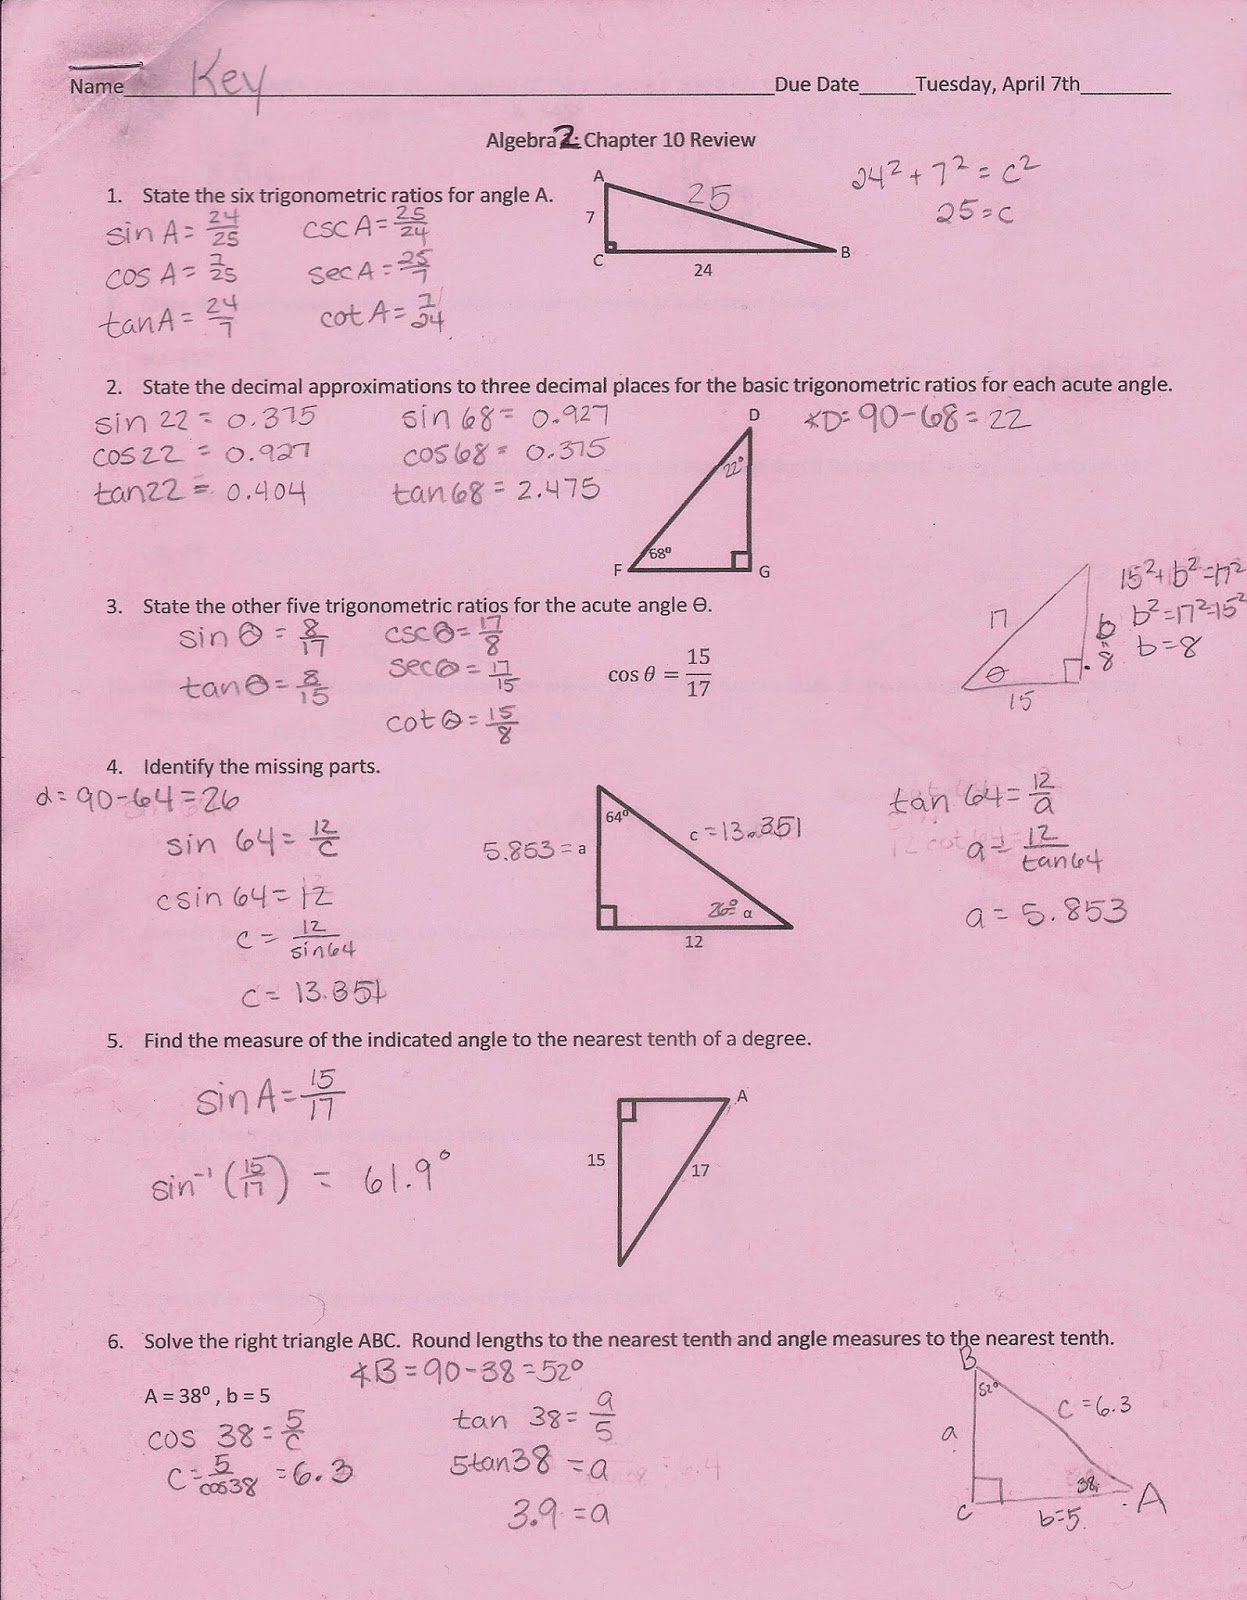 Algebra 2 chapter 9 review answers